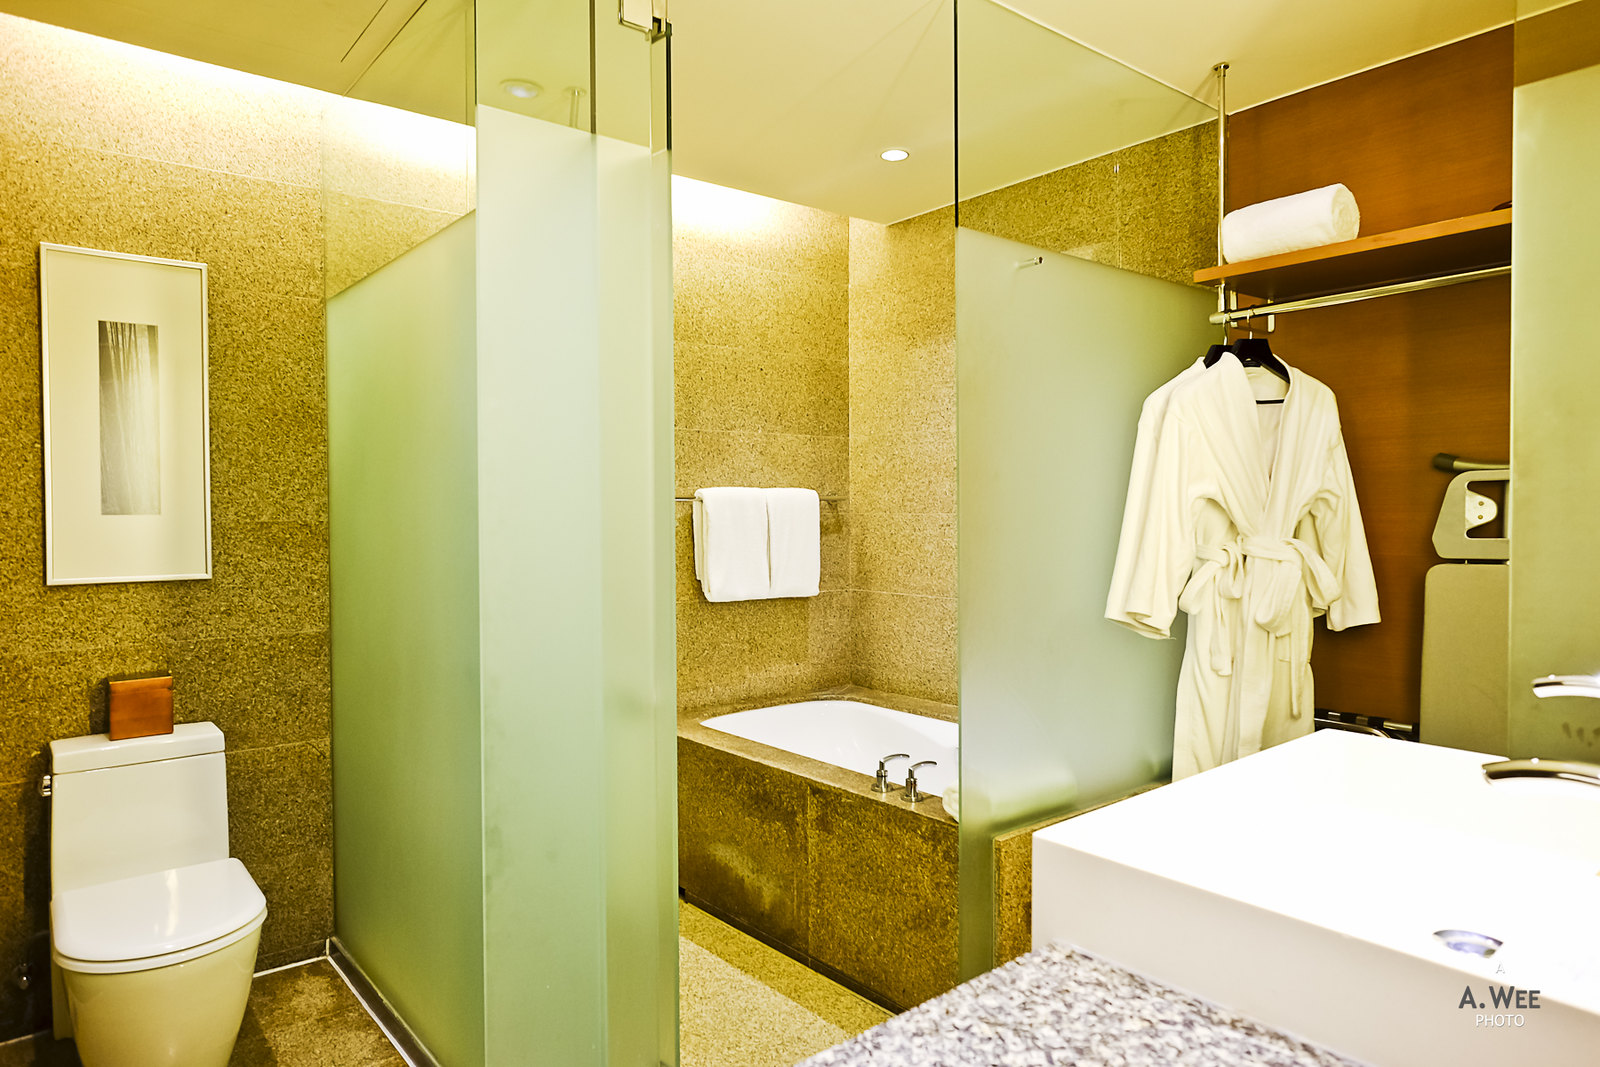 Bathroom compartments